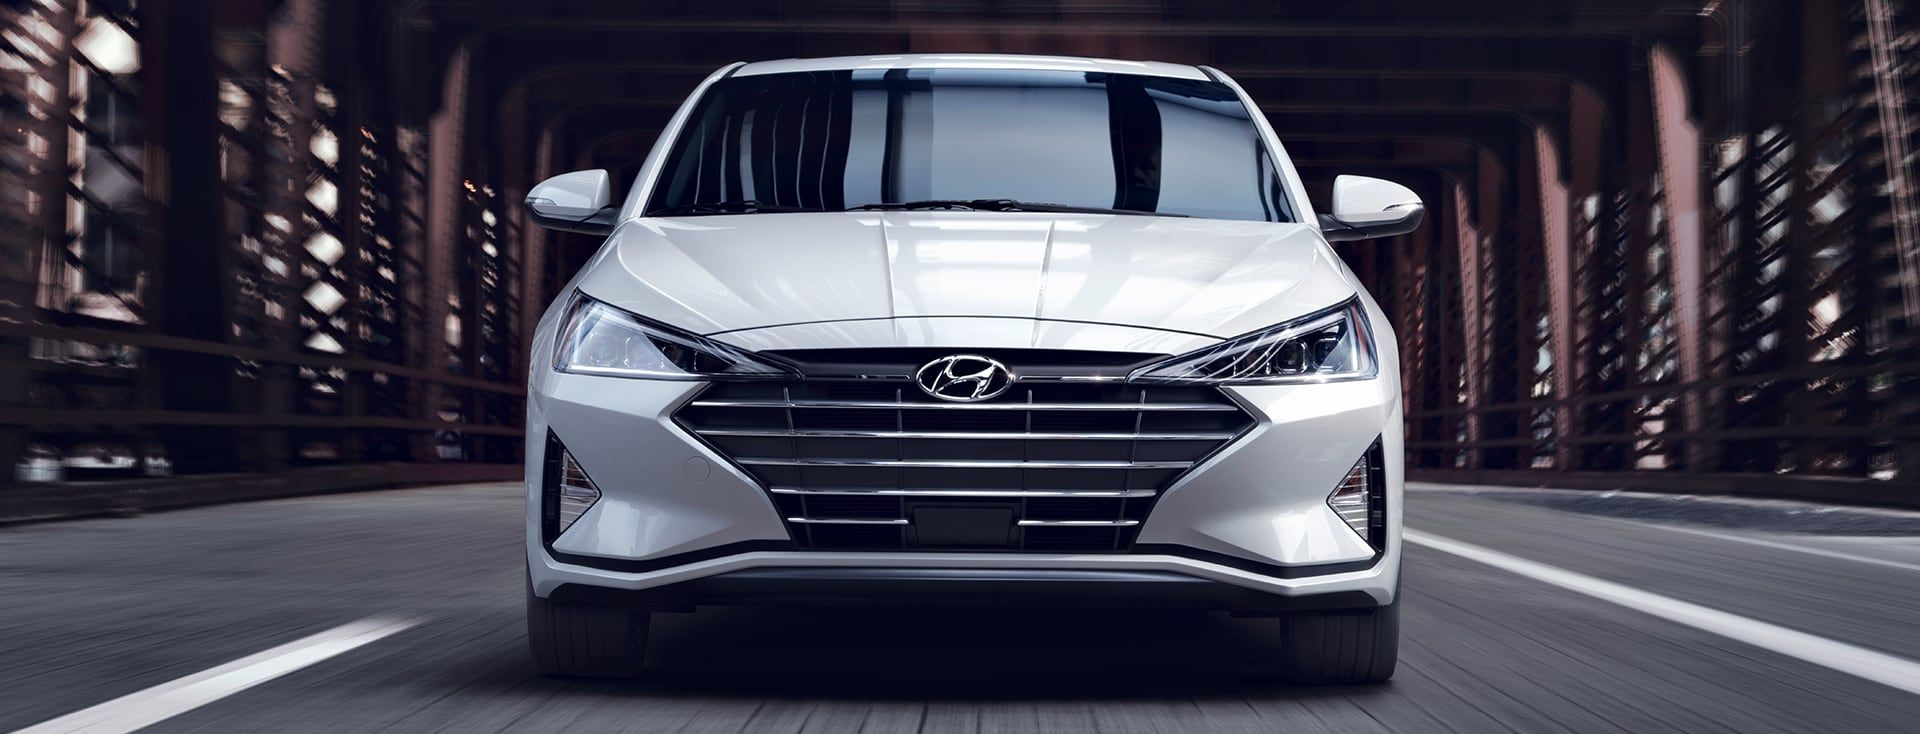 2020 Hyundai Elantra Leasing near Richmond, VA